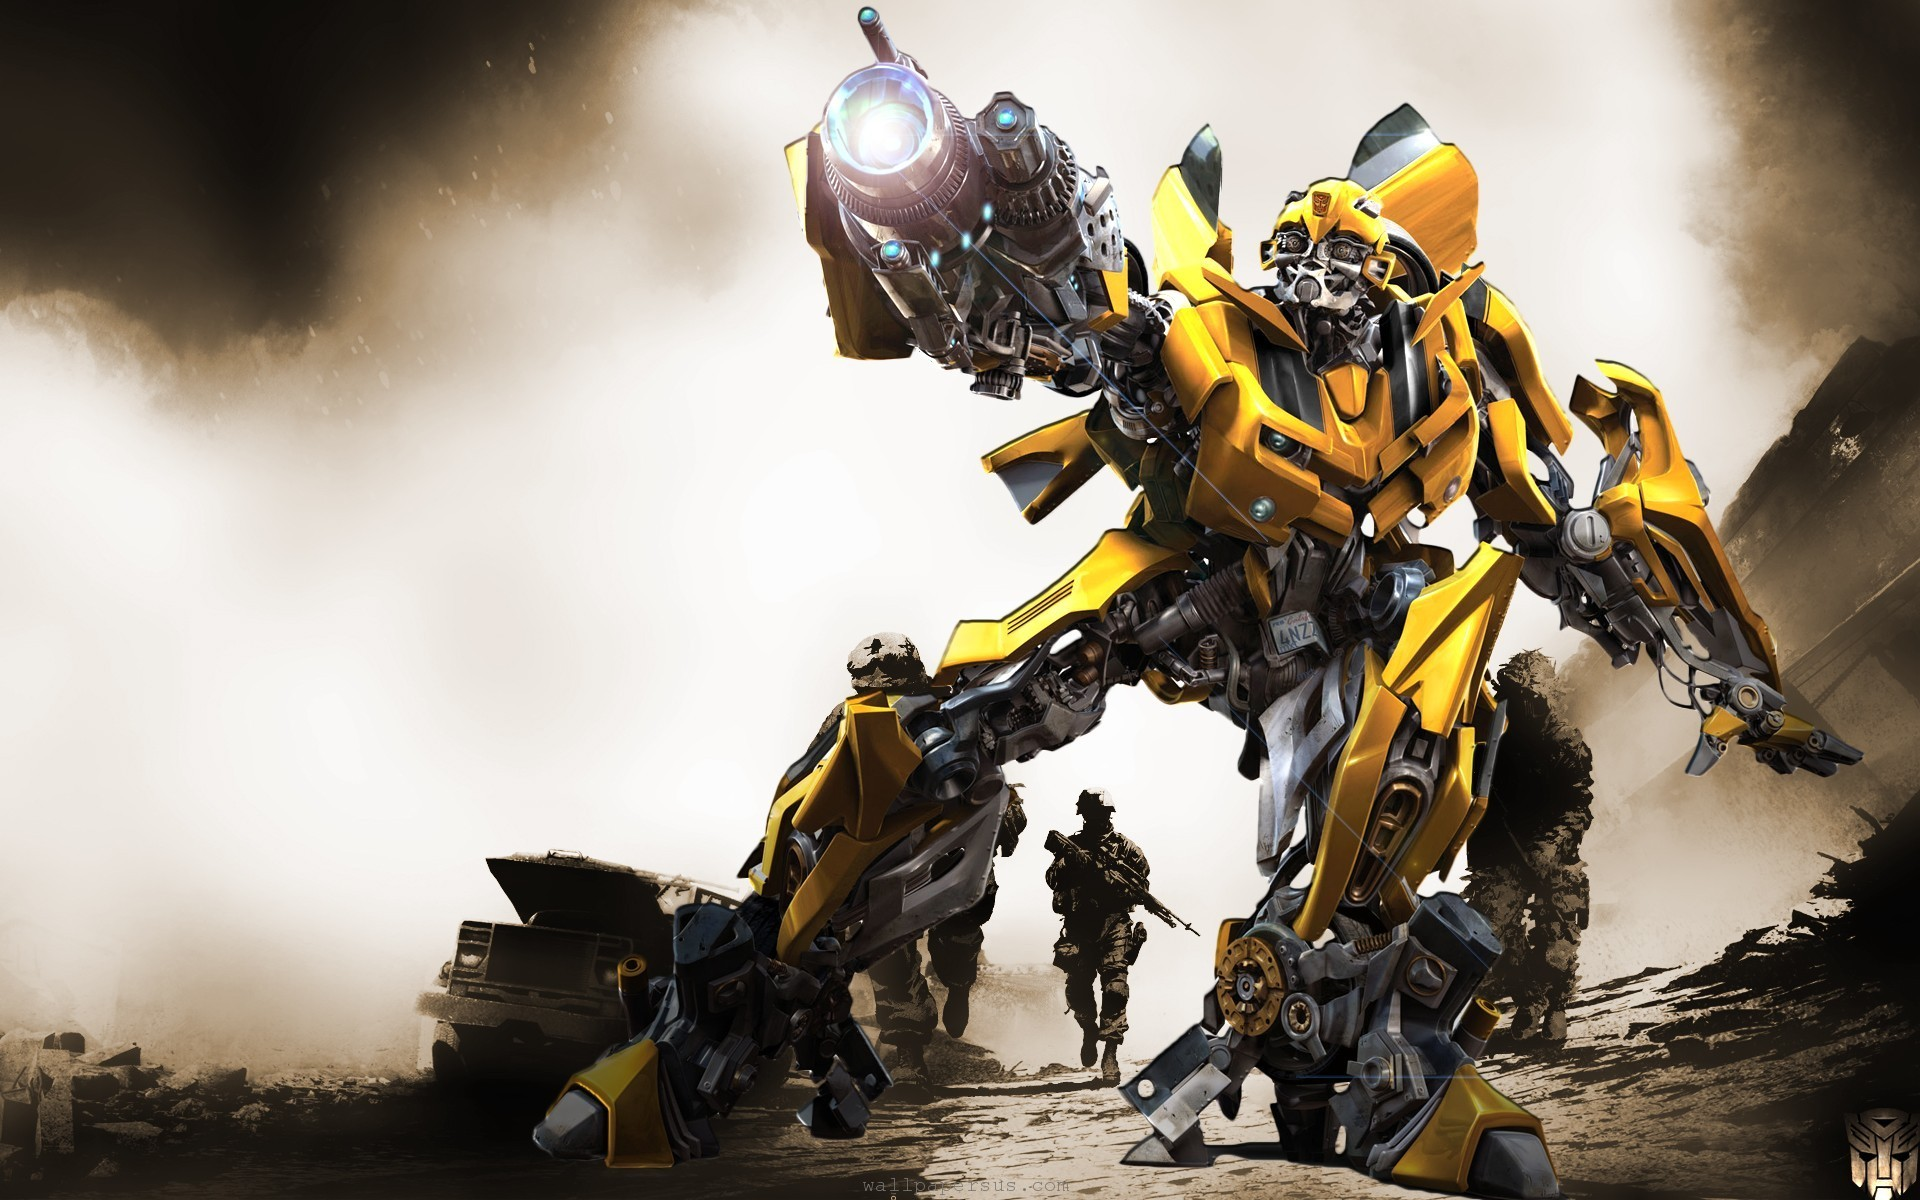 1920x1200 Transformers Bumblebee Wallpaper Transformers Movies 640×1136 Transformer Bumblebee  Wallpapers (44 Wallpapers) |